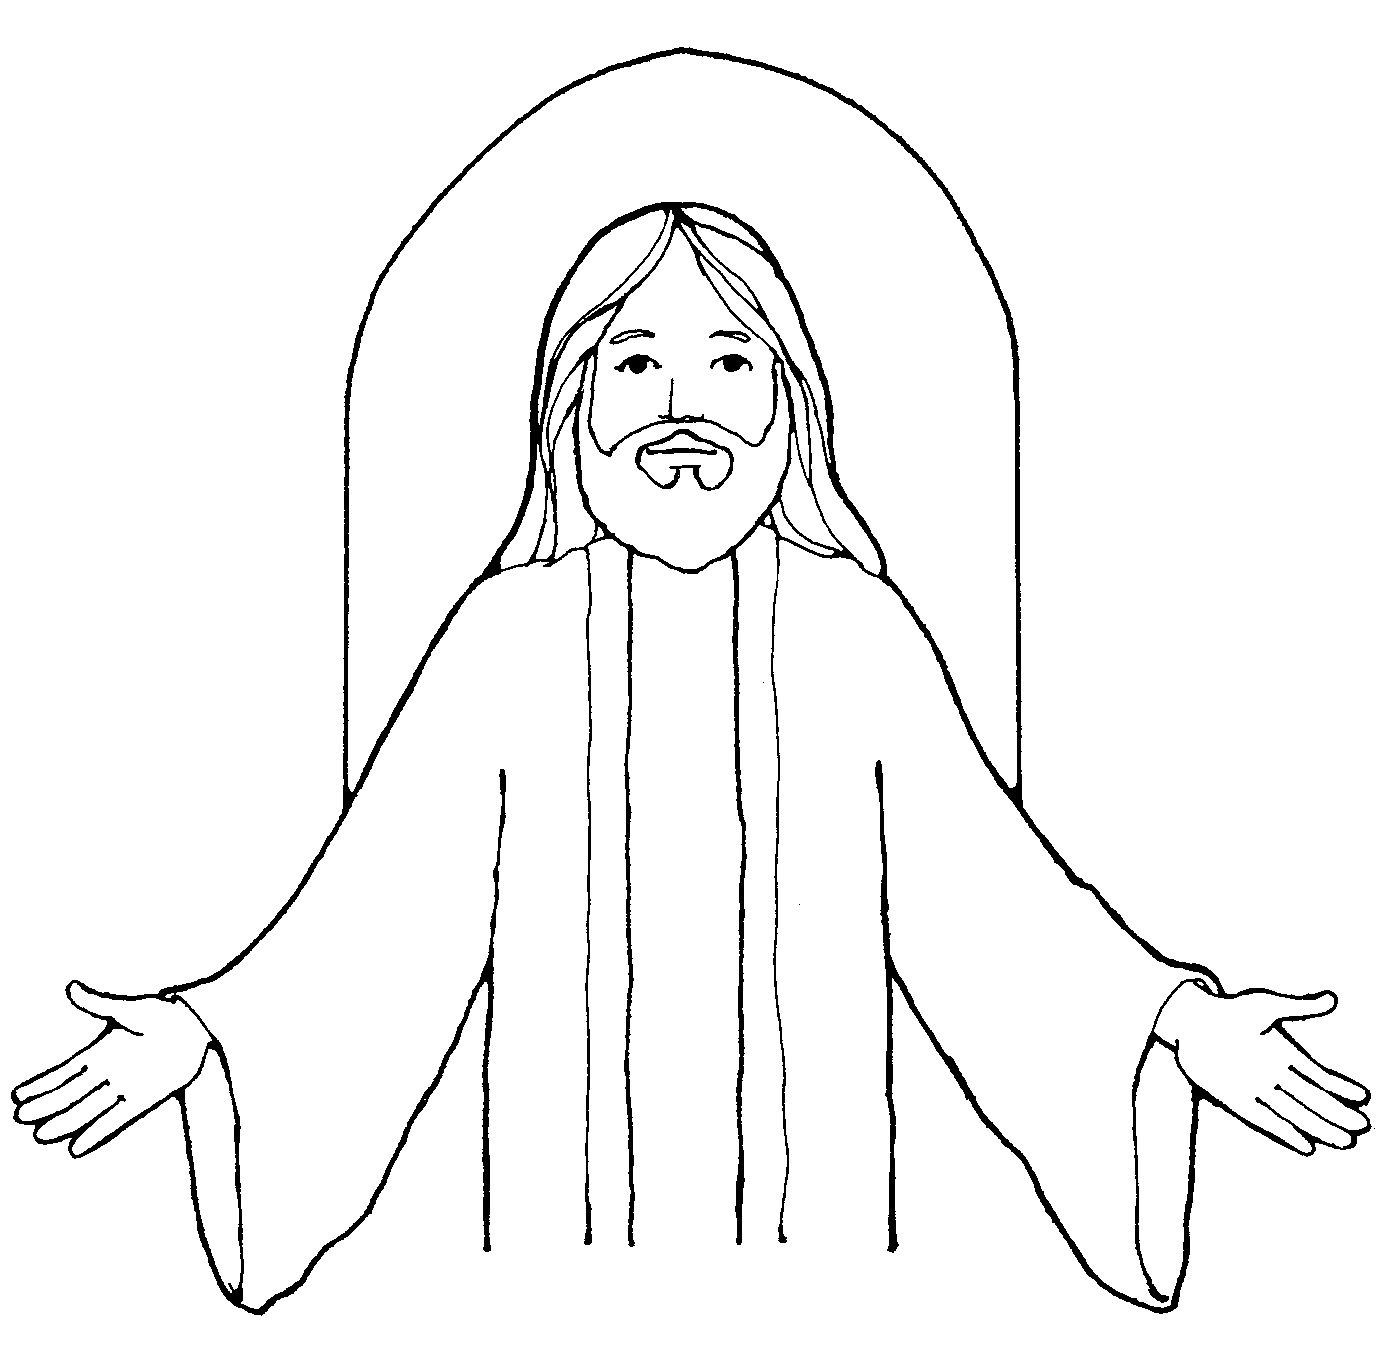 free lds clipart to color for primary children.